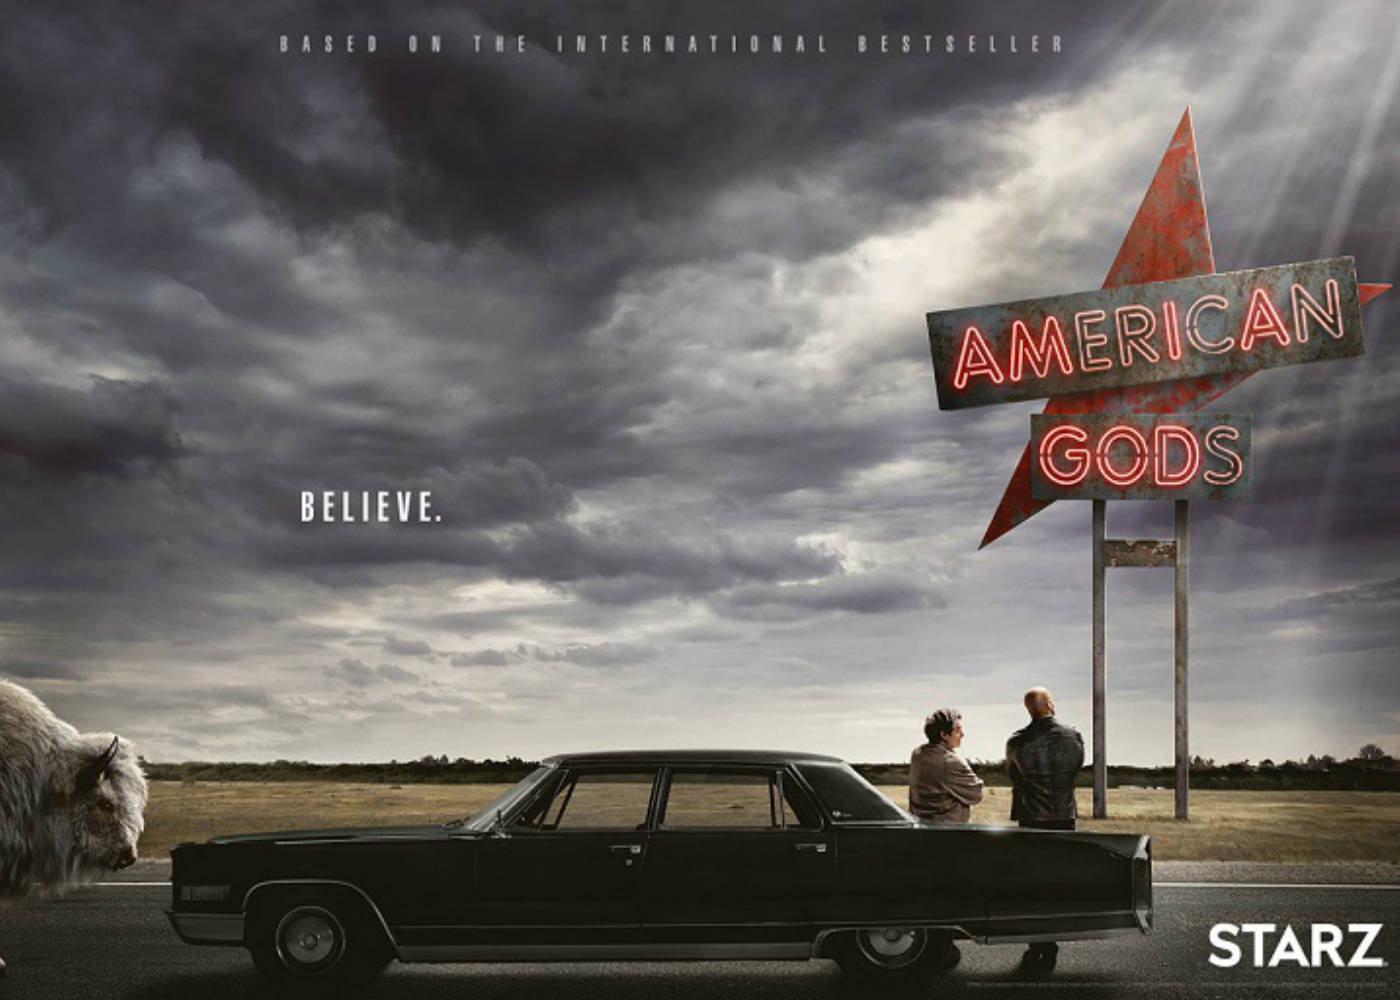 American Gods Makes Audacious Debut